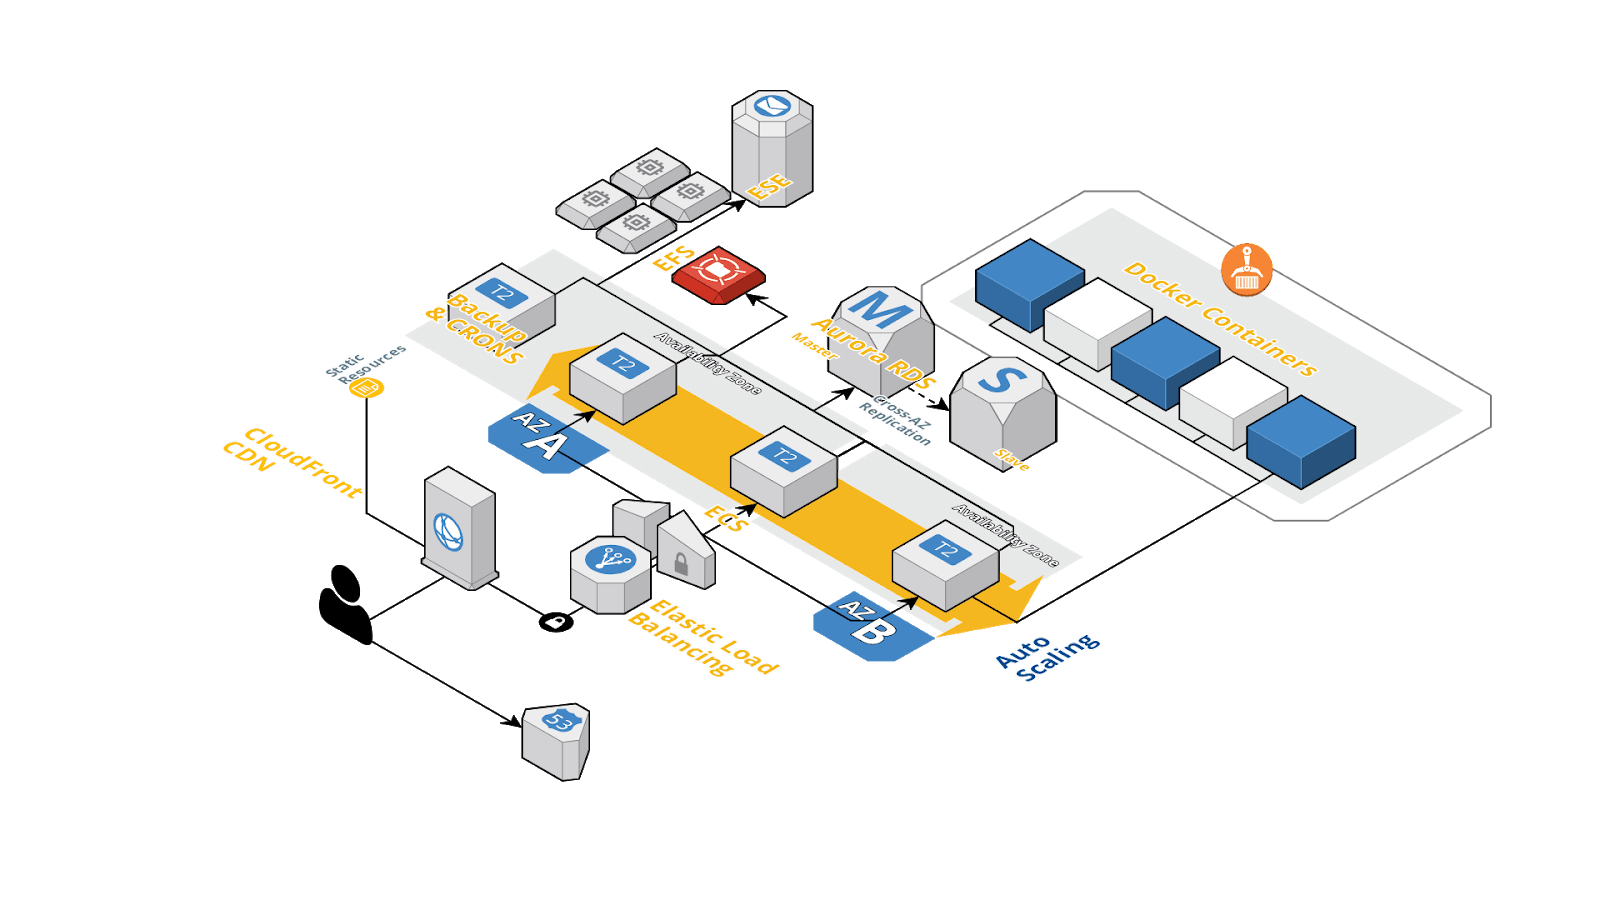 AWS architected solution